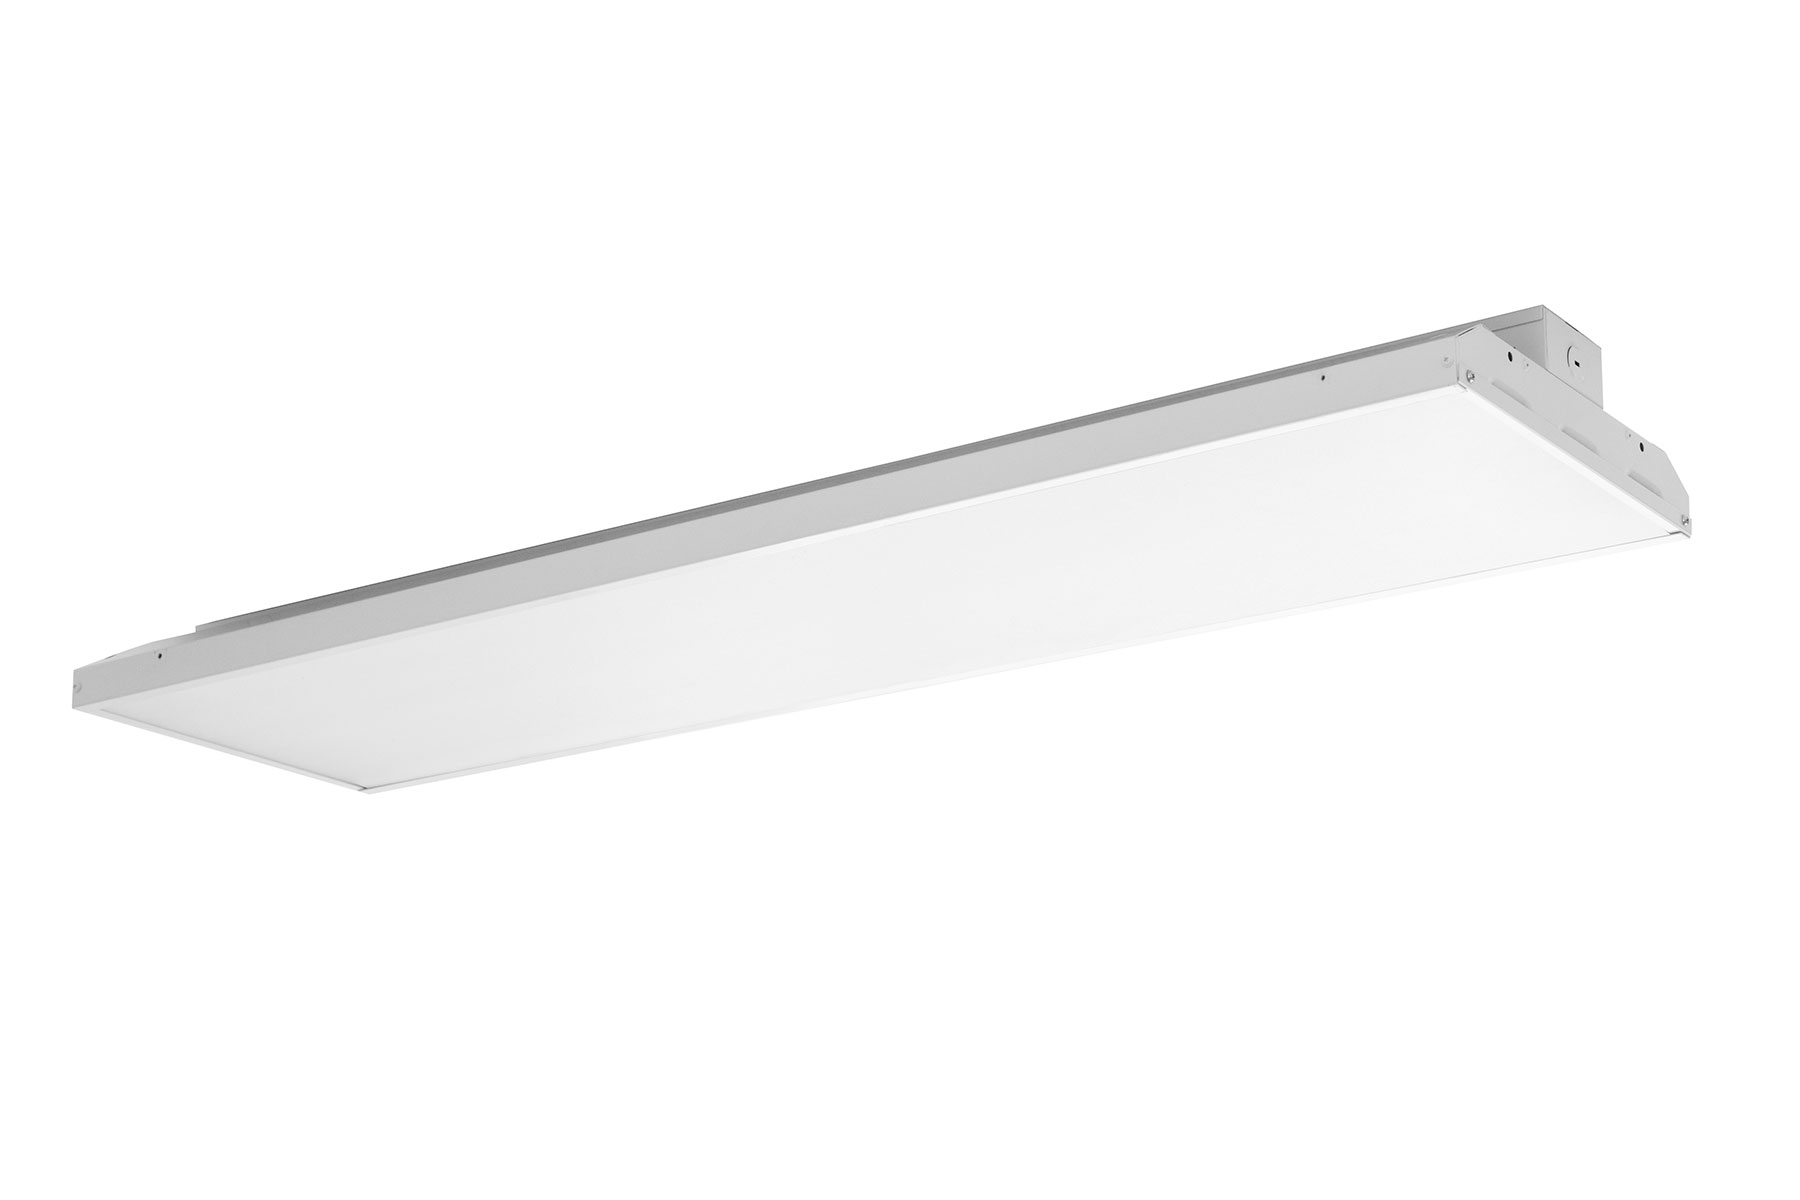 4FT-Linear-High-Bay-LED-Lights